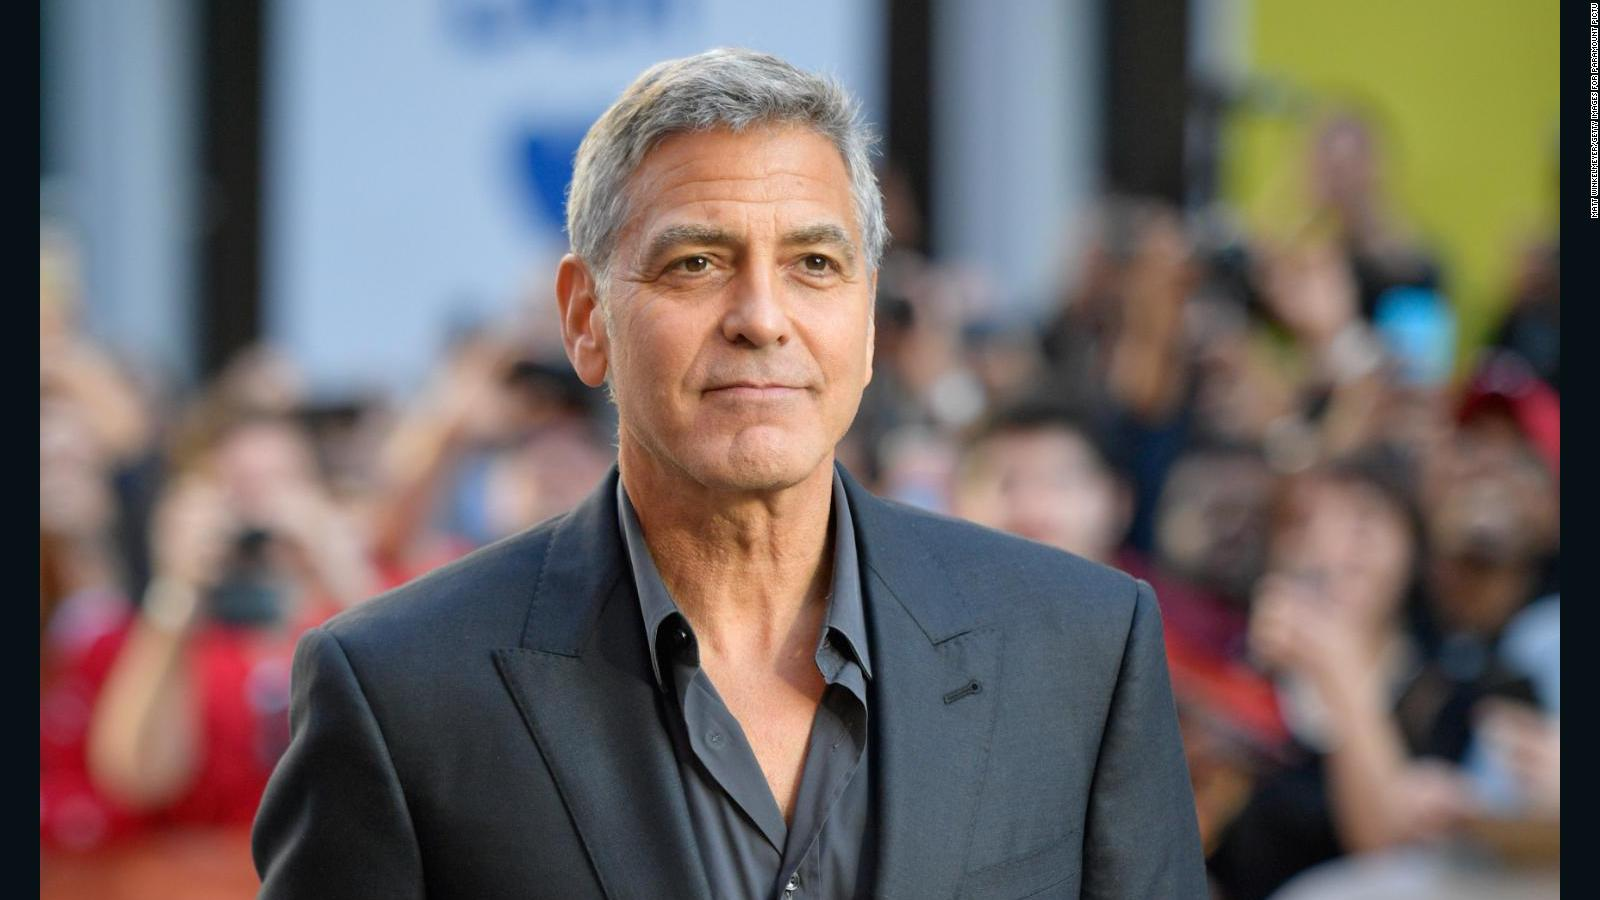 George Clooney calls for hotel boycott over Brunei LGBT death 1600x900